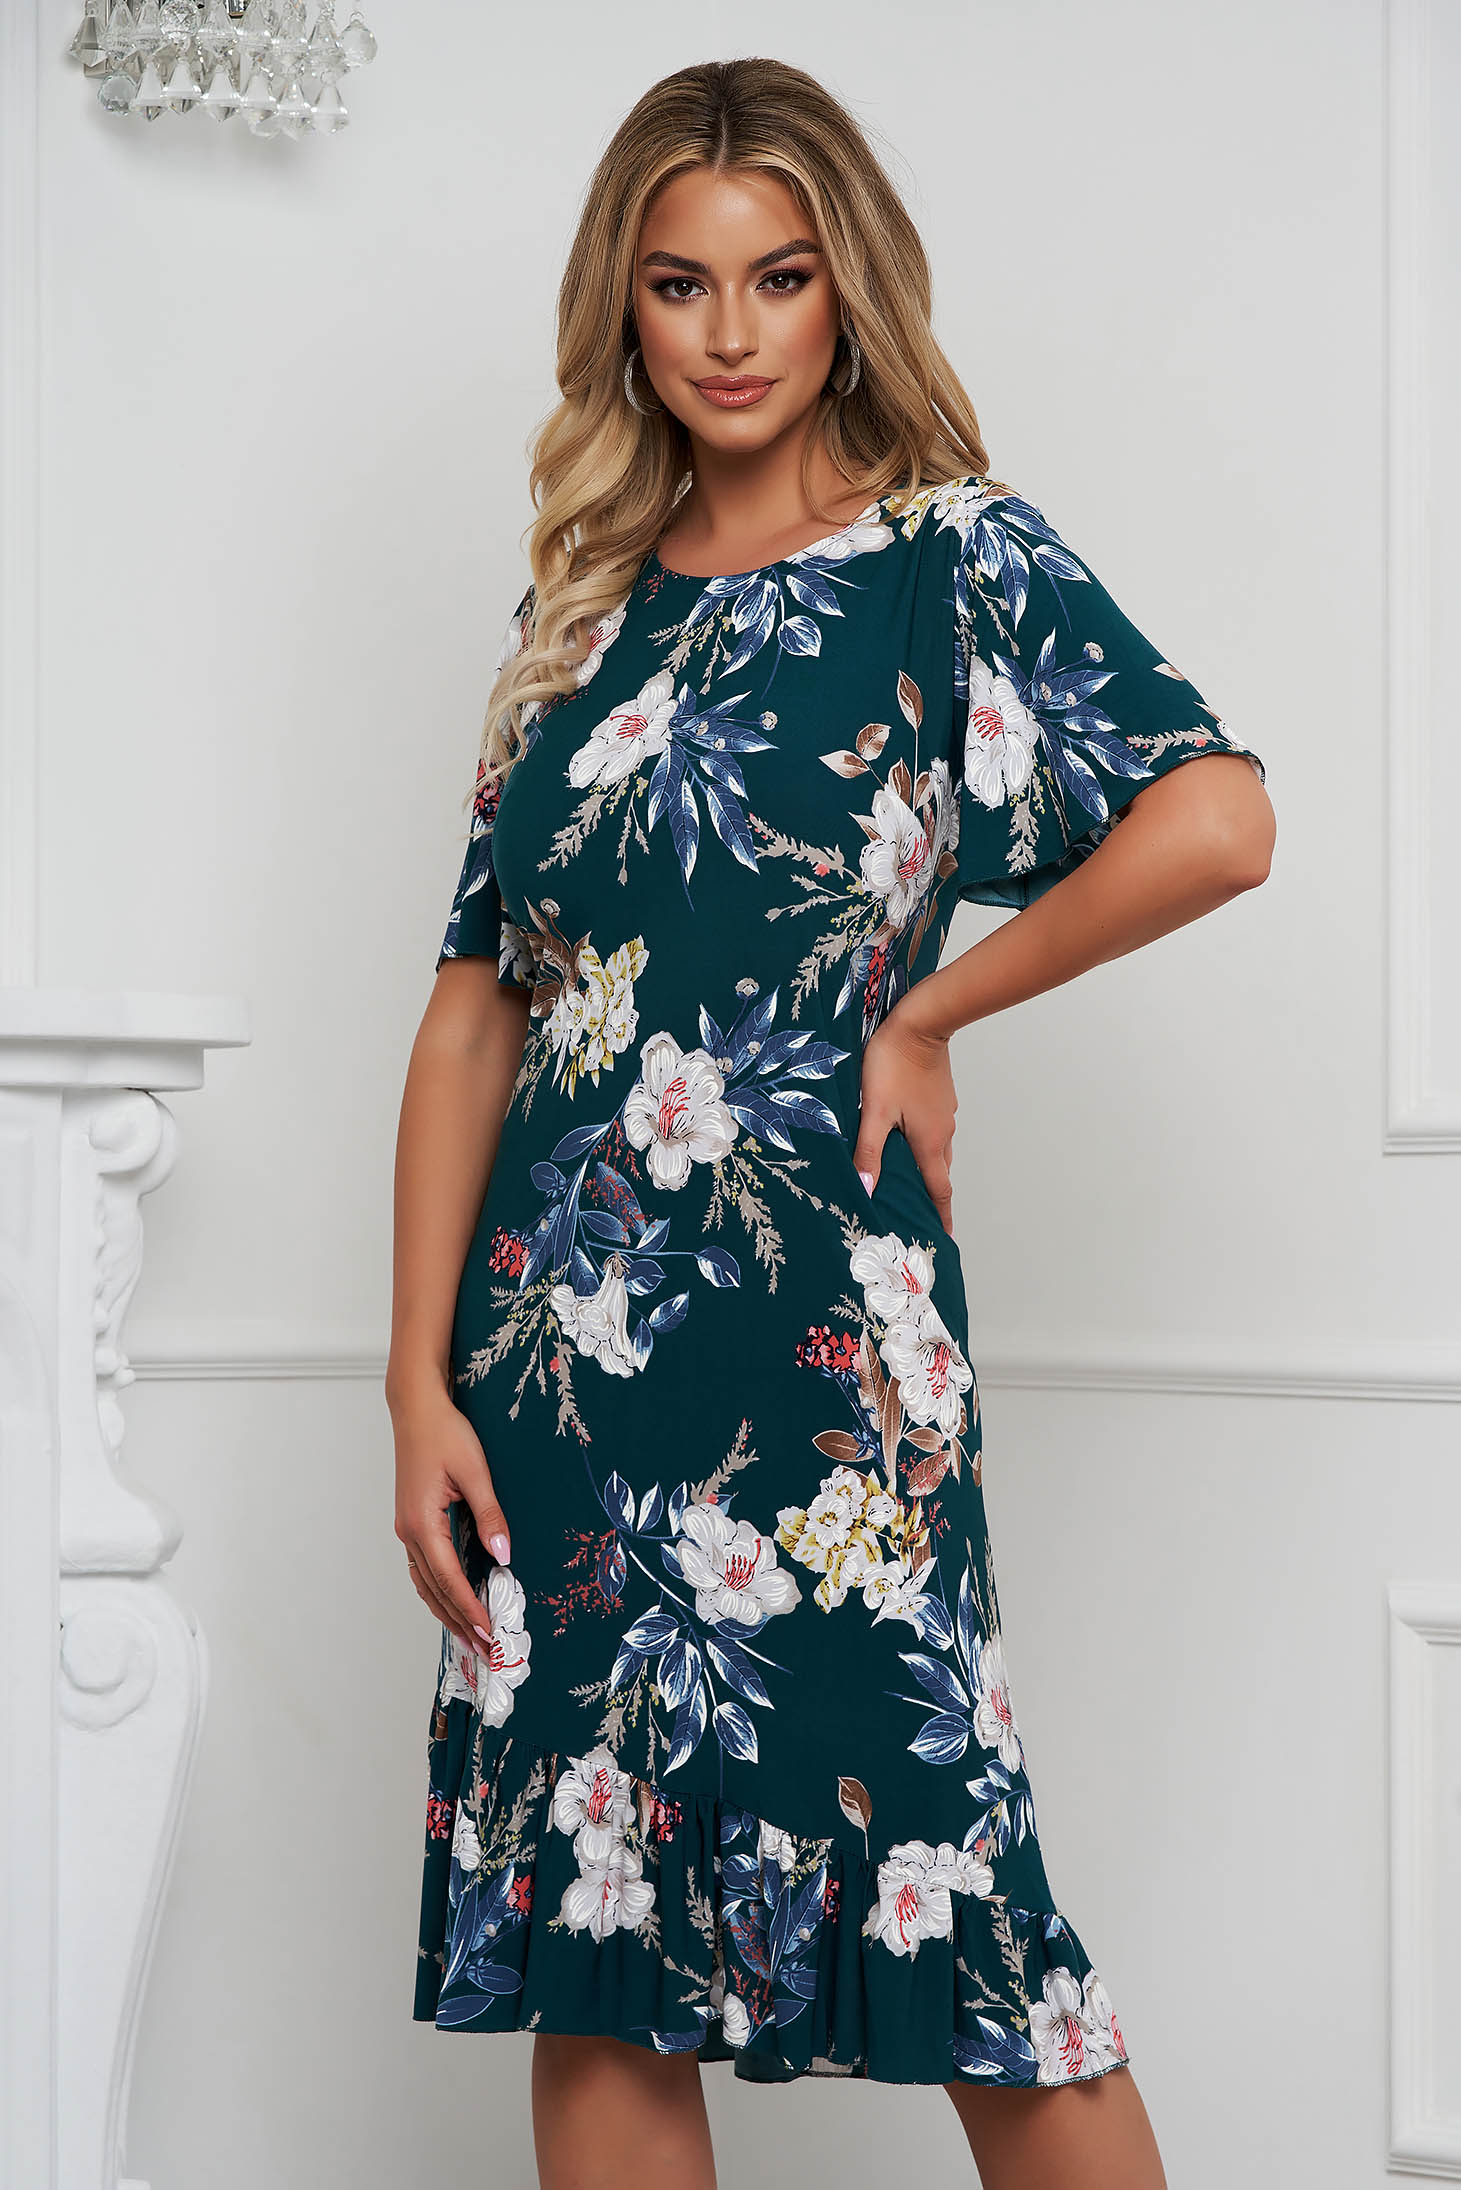 Dress straight from elastic fabric with ruffle details with floral print